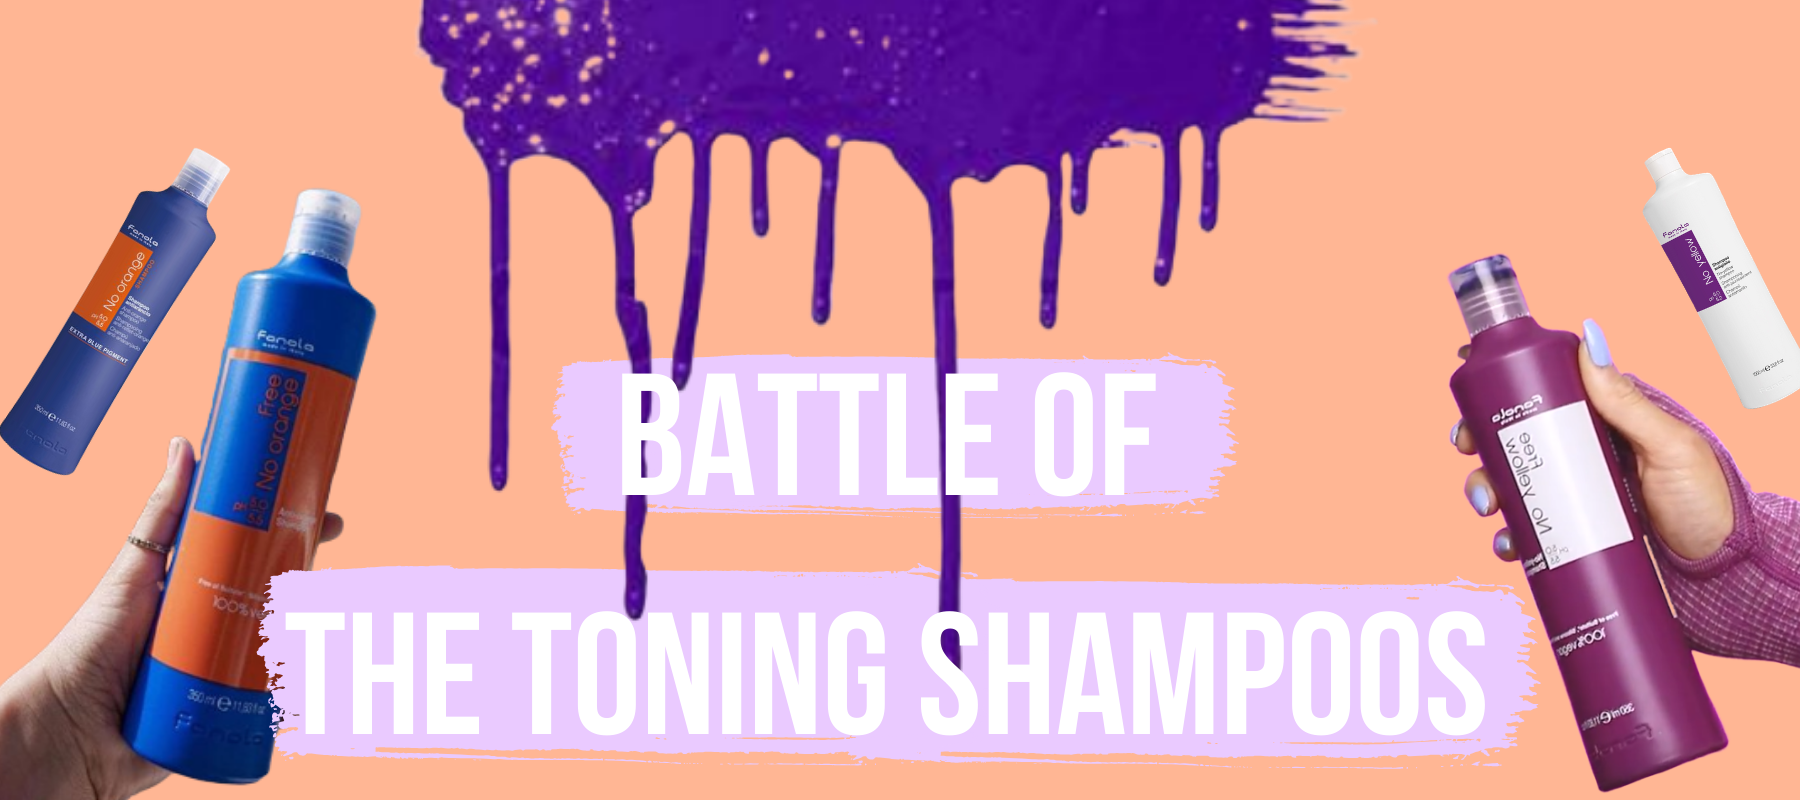 Battle Of The Toning Shampoos